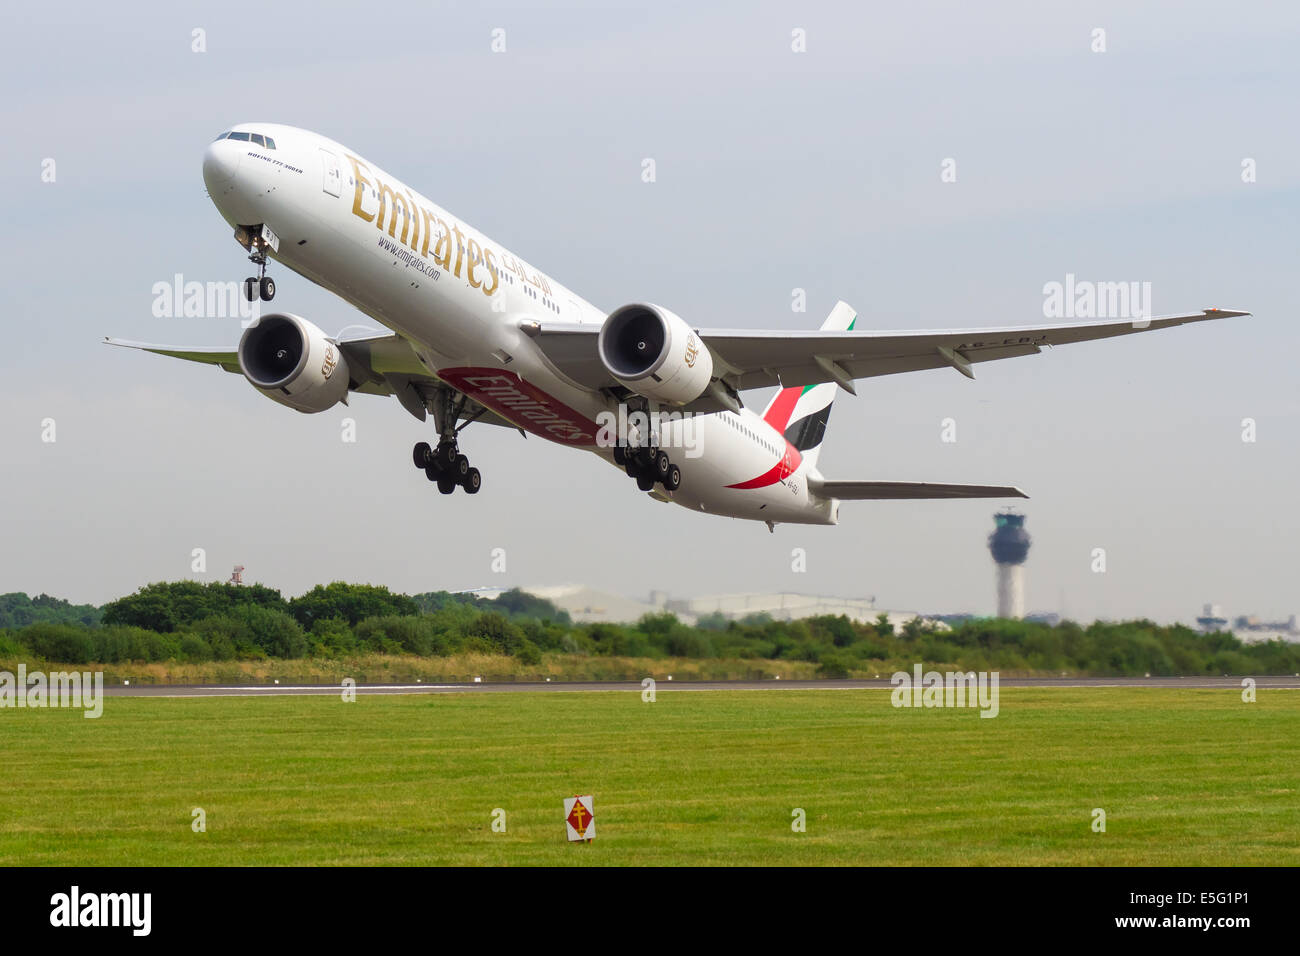 Emirates Boeing 777 A6-EBJ taking off from Manchester Airport to Dubai - Stock Image